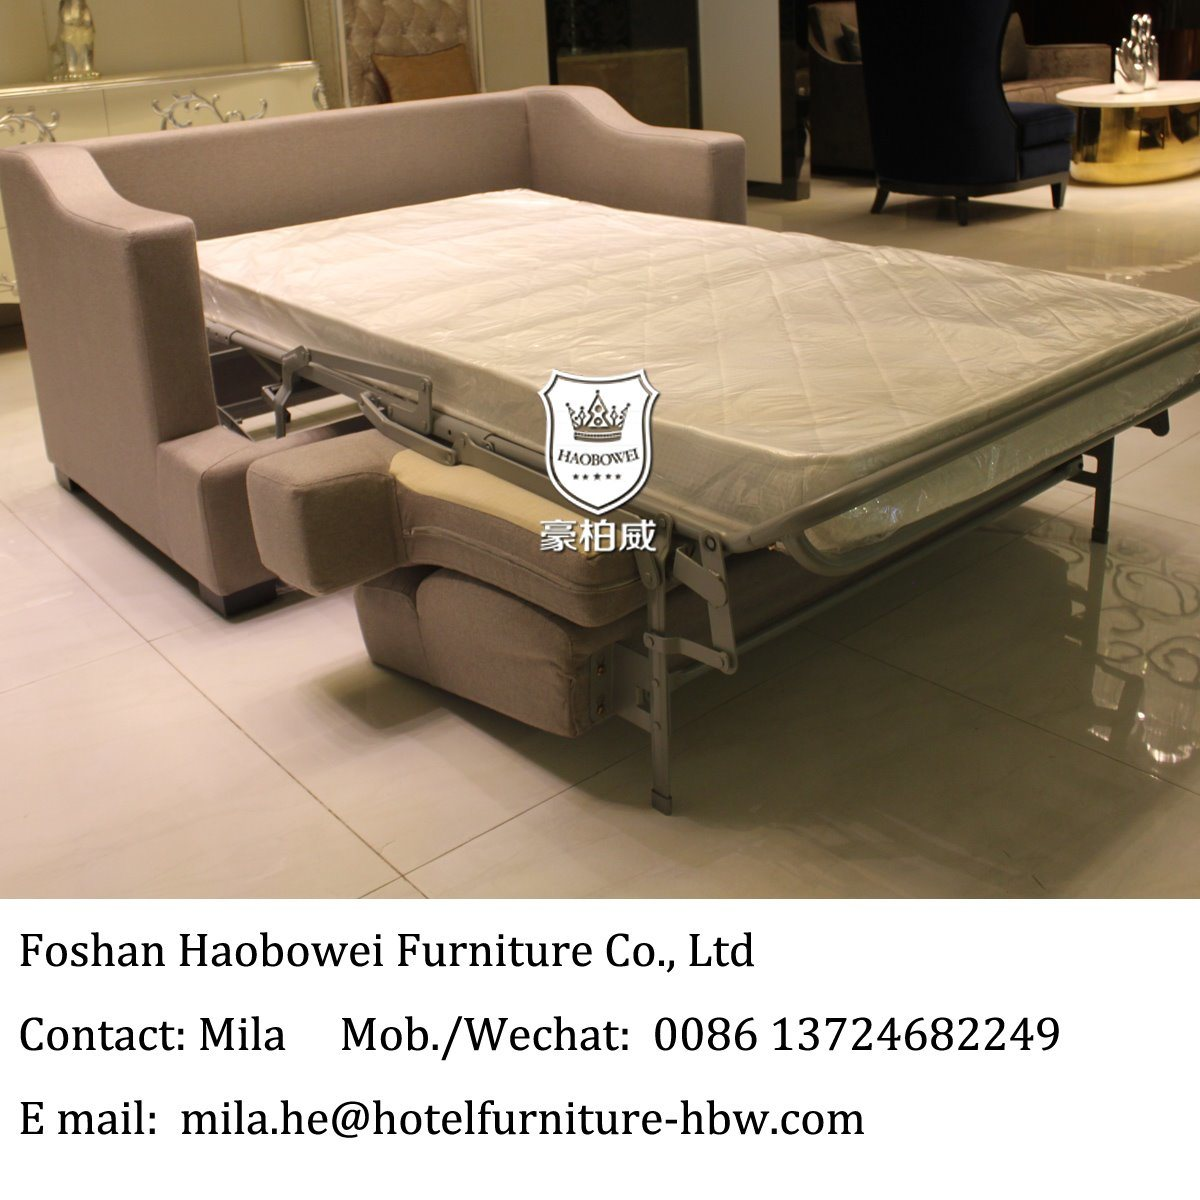 Fantastic Hot Item Uk Hilton Hotel Sofa Sleeper For Guest Room Hotel Quality Sofa Bed Supplier Caraccident5 Cool Chair Designs And Ideas Caraccident5Info